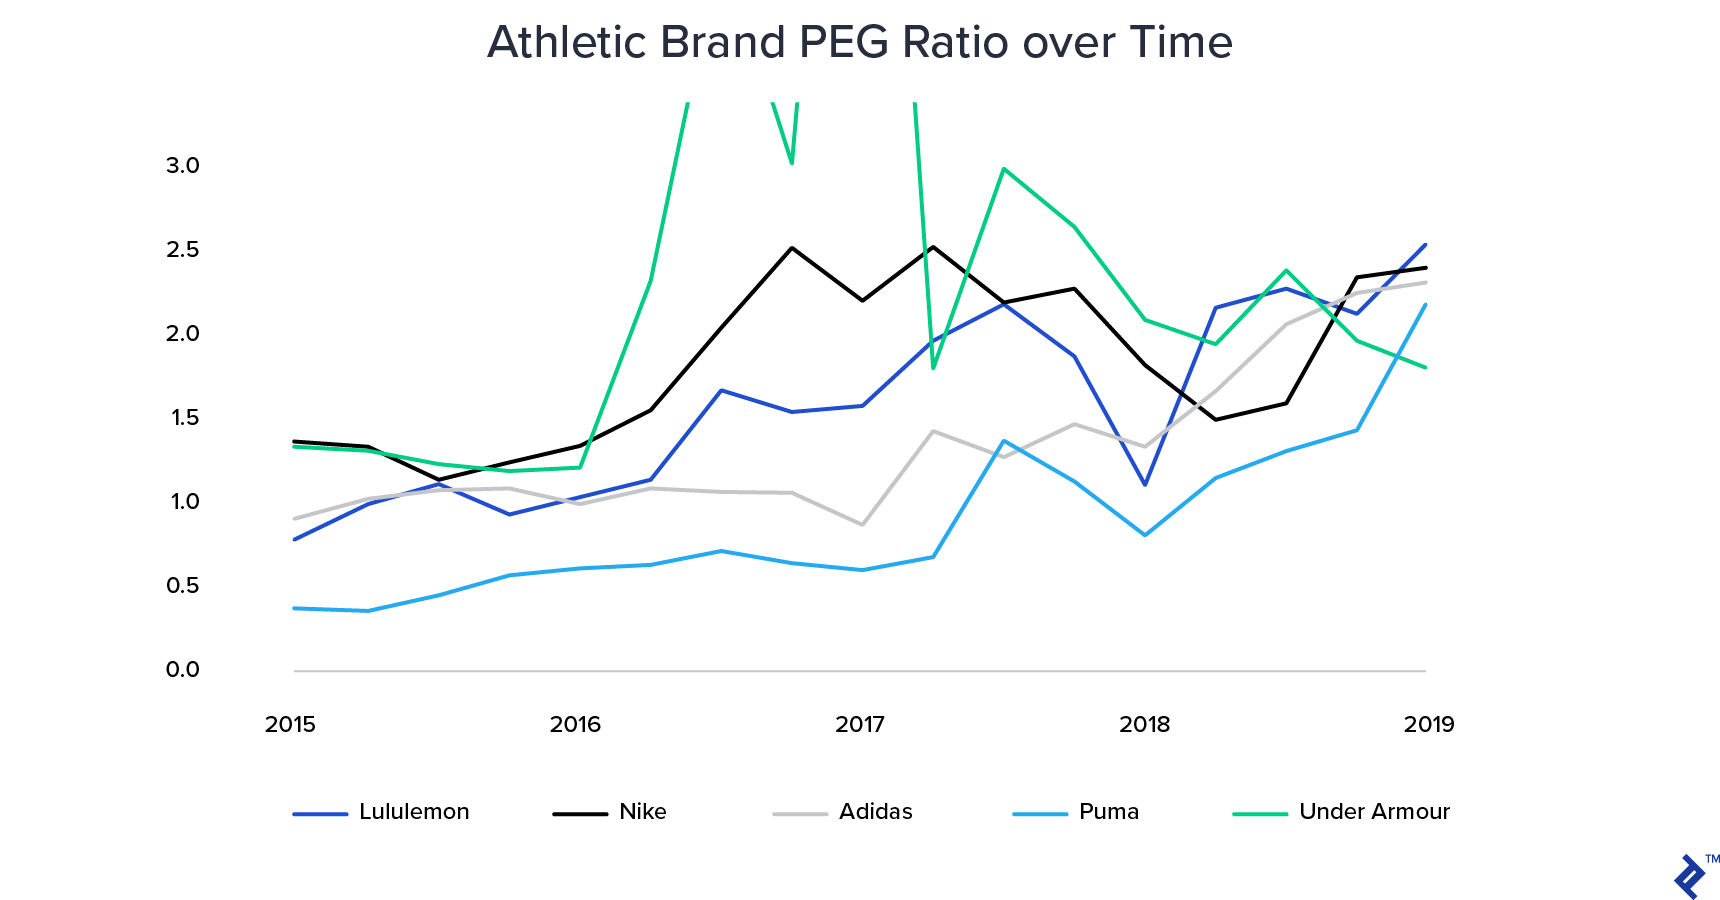 PEG ratios over time